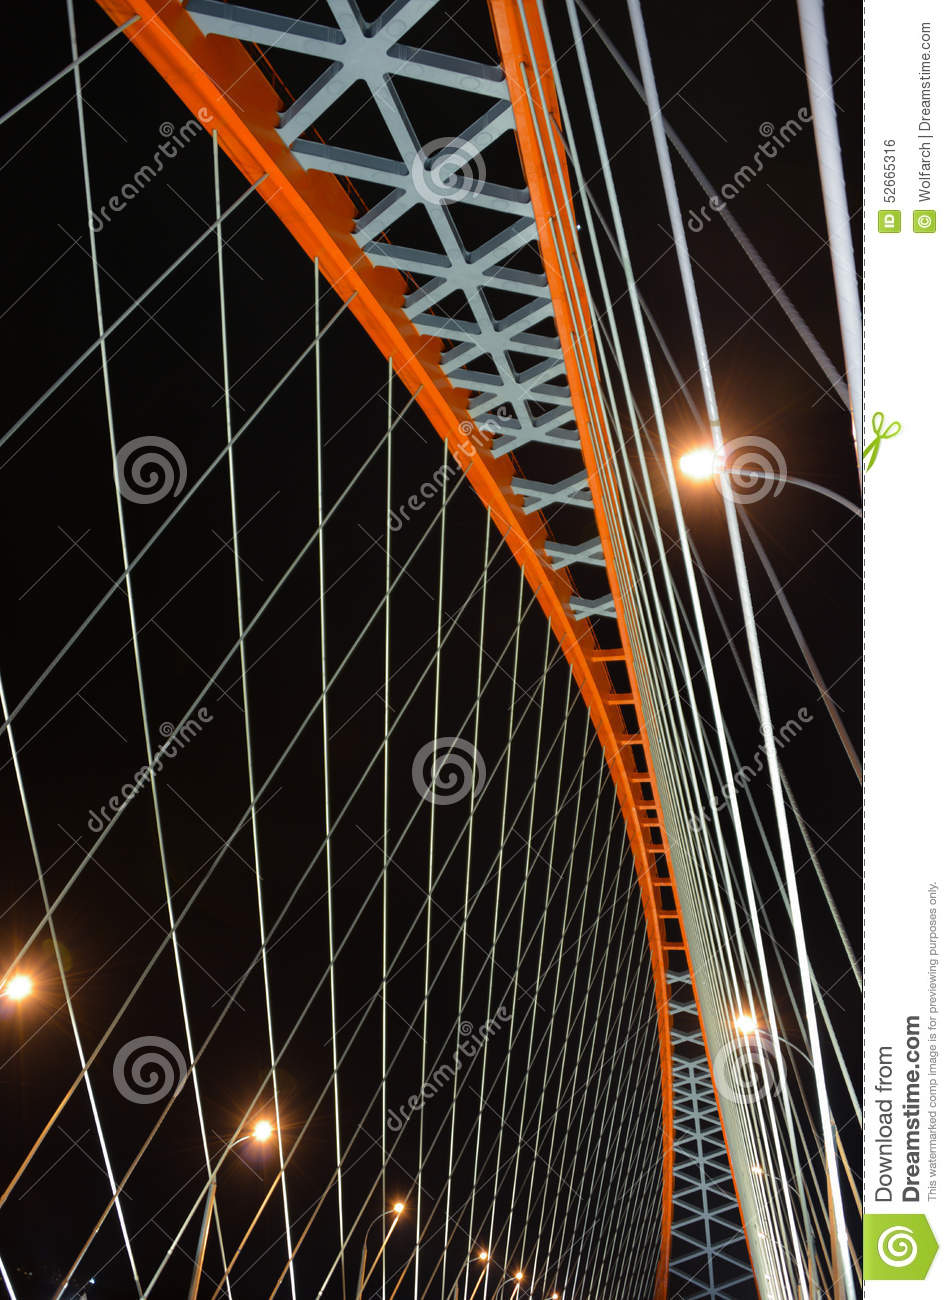 Cable-stayed through arch bridge (Bugrinsky Bridge) over river Ob at night, in Novosibirsk, Siberia, Russia